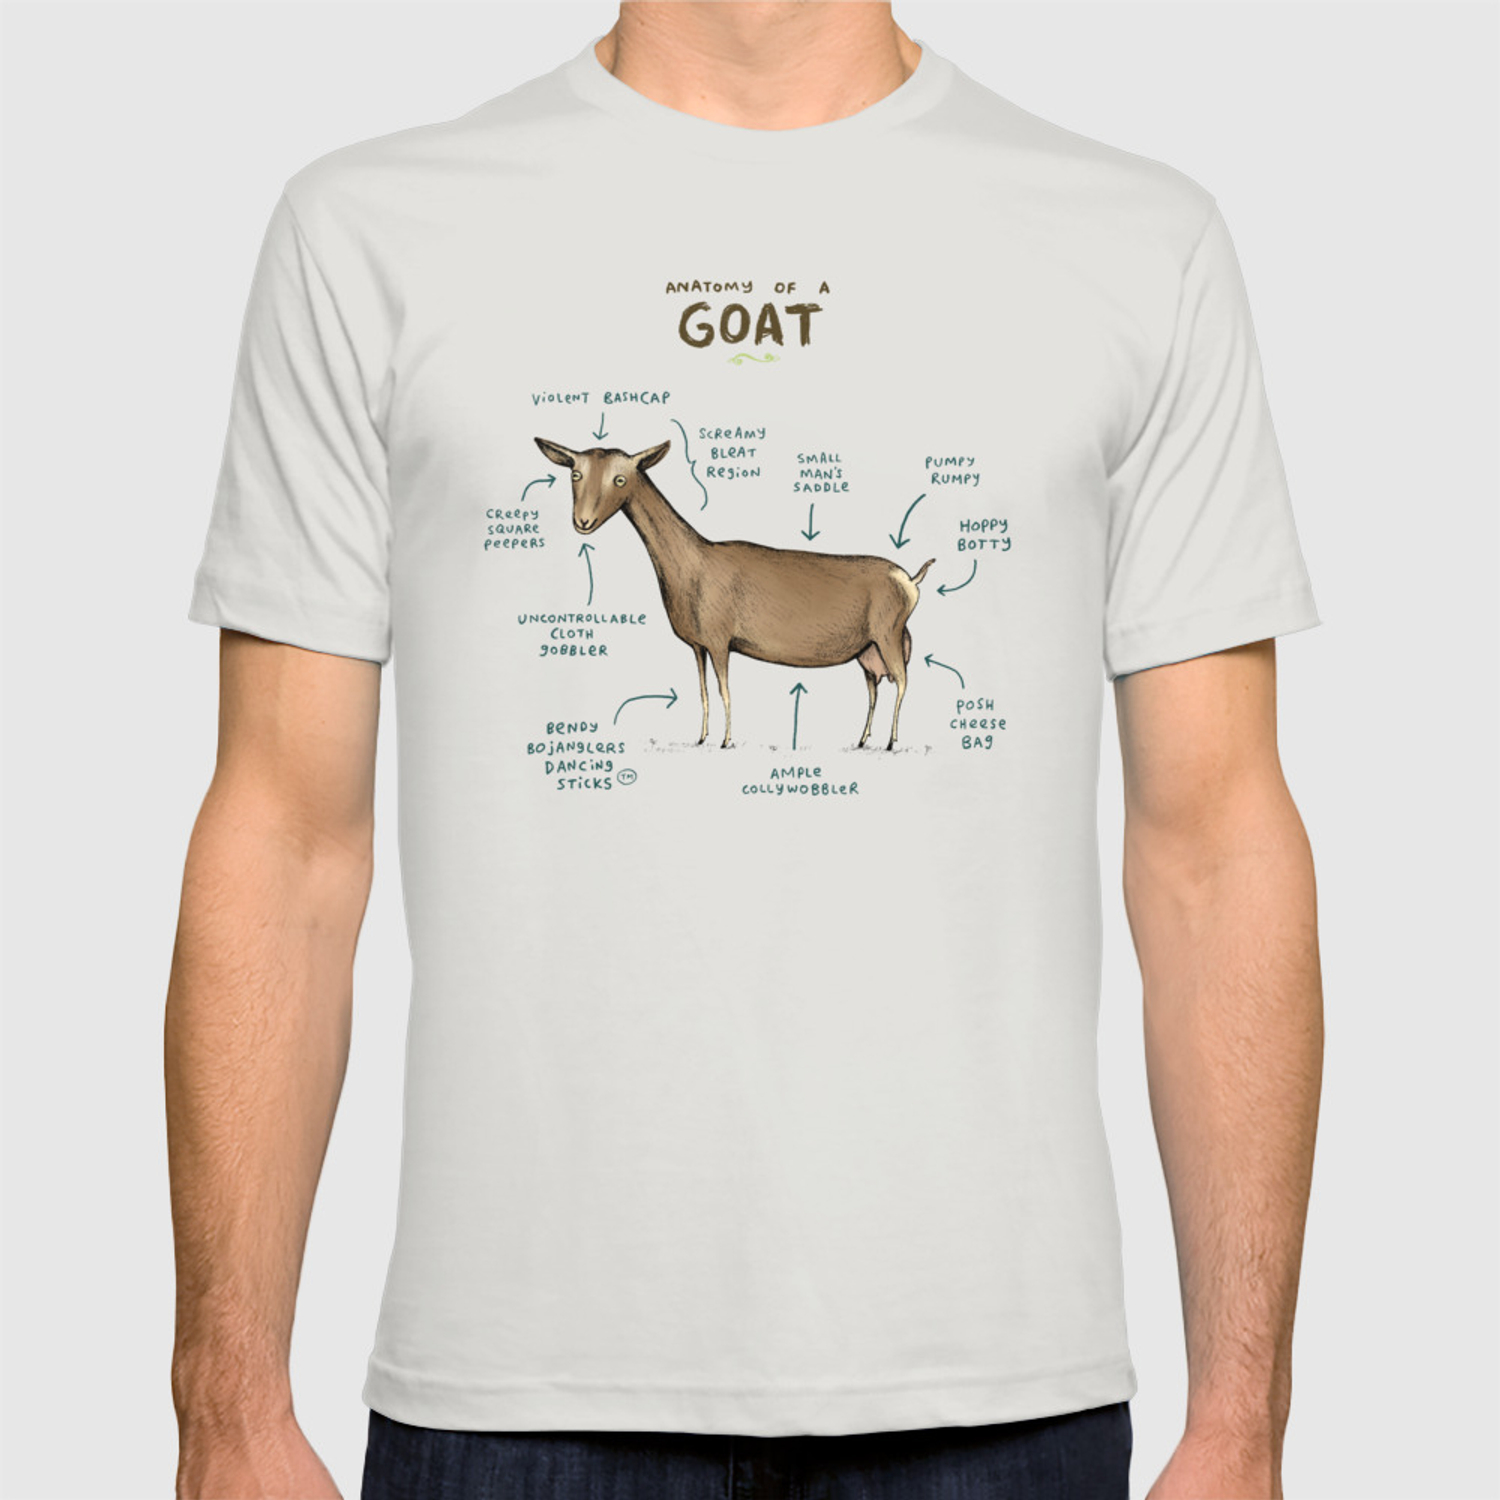 90f1a75c1 Anatomy of a Goat T-shirt by sophiecorrigan | Society6